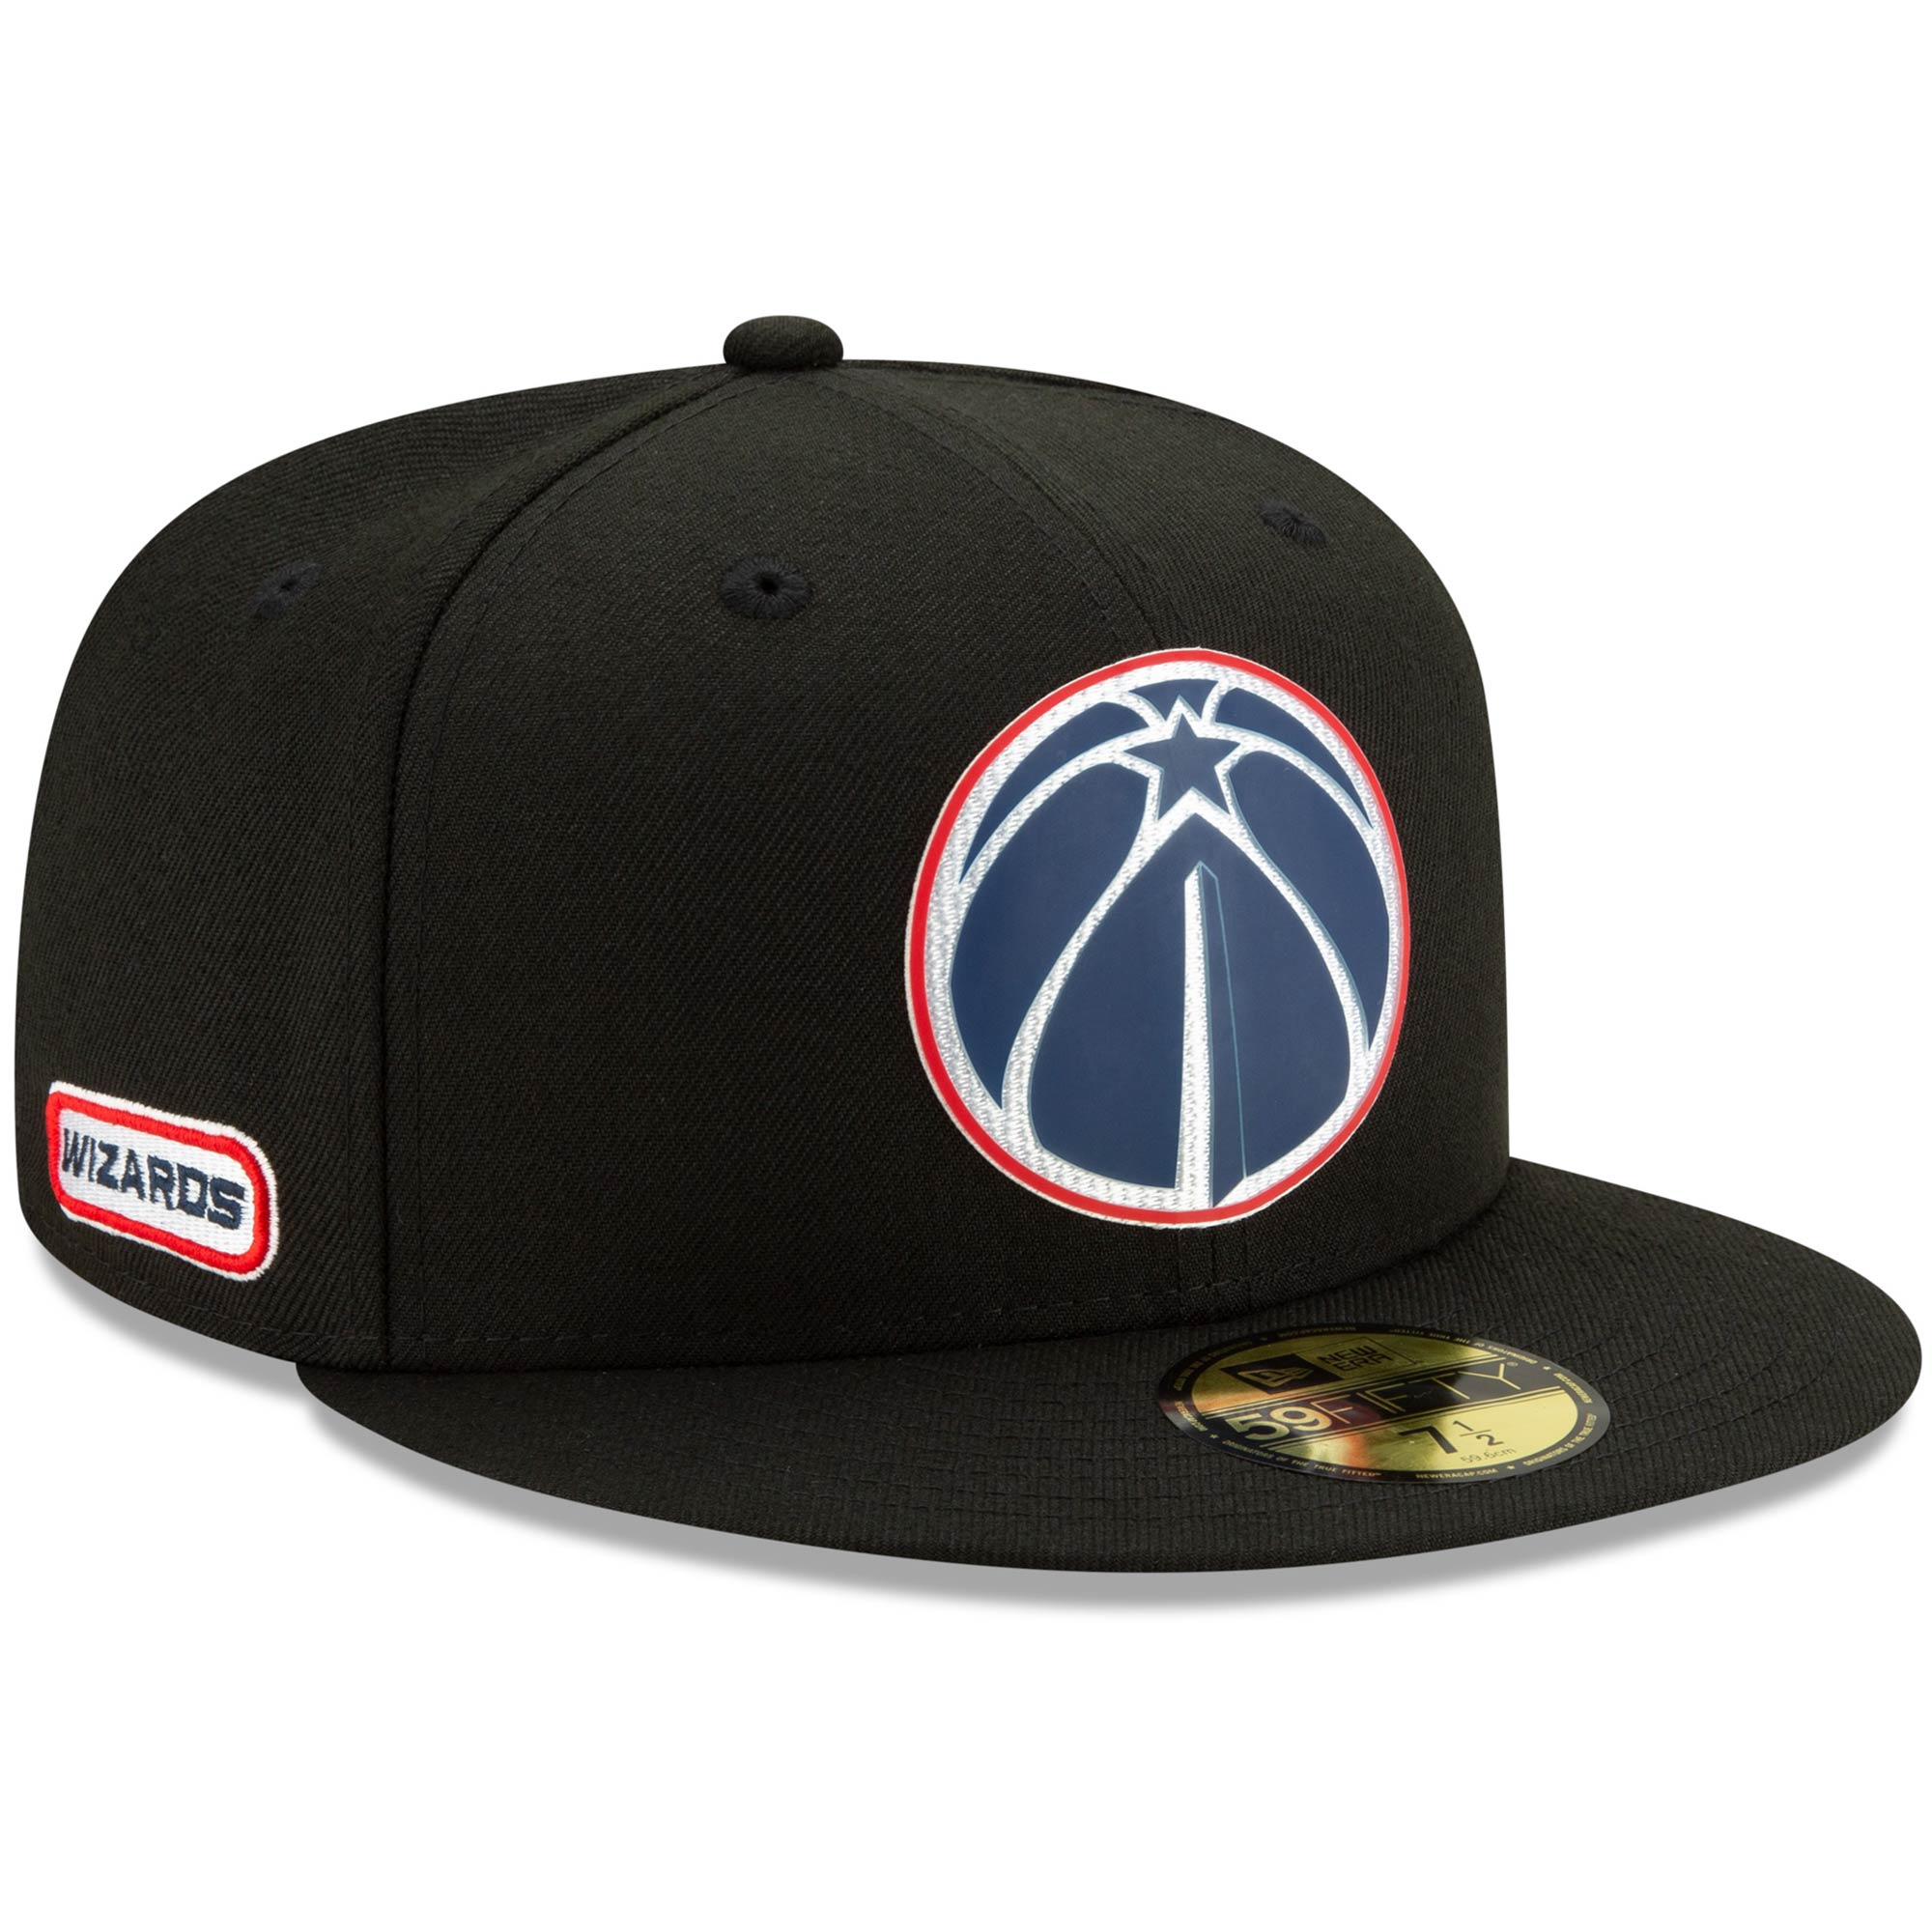 Washington Wizards New Era Official Back Half 59FIFTY Fitted Hat - Black